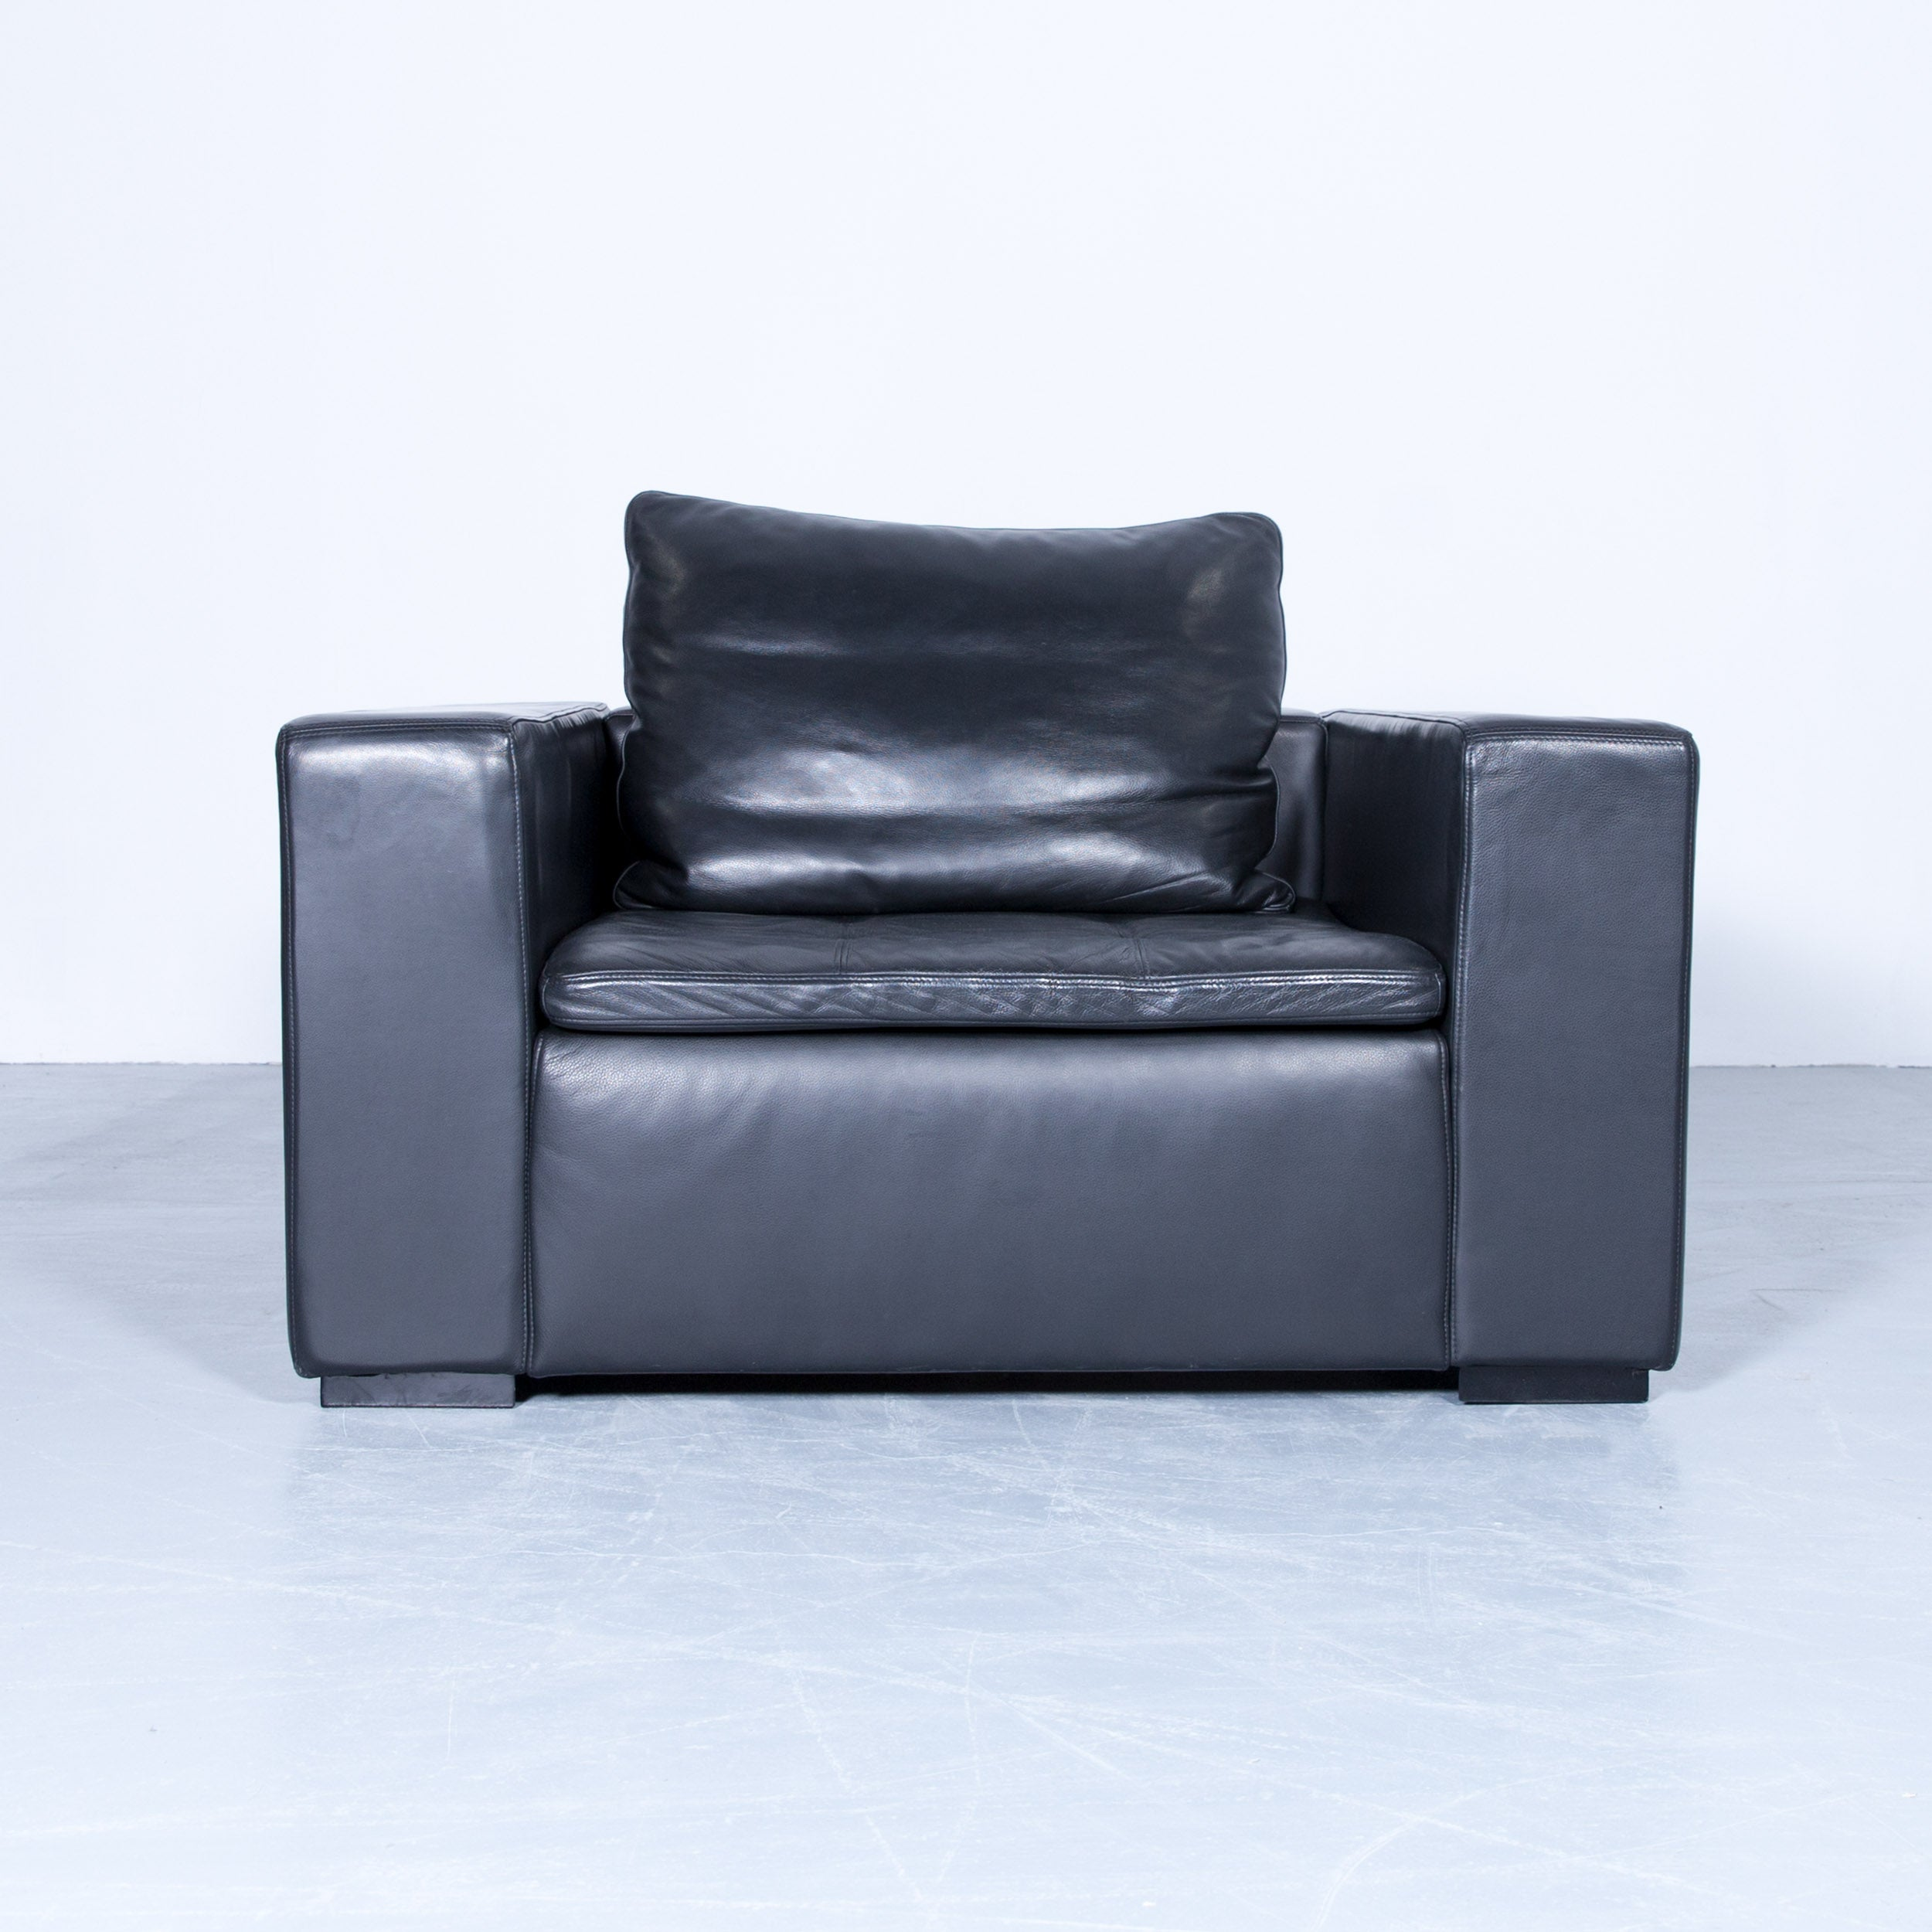 Dieter Rams Sessel Gebraucht Boconcept Designer Sofa Set Black Three Seat Armchair And Footstool Leather